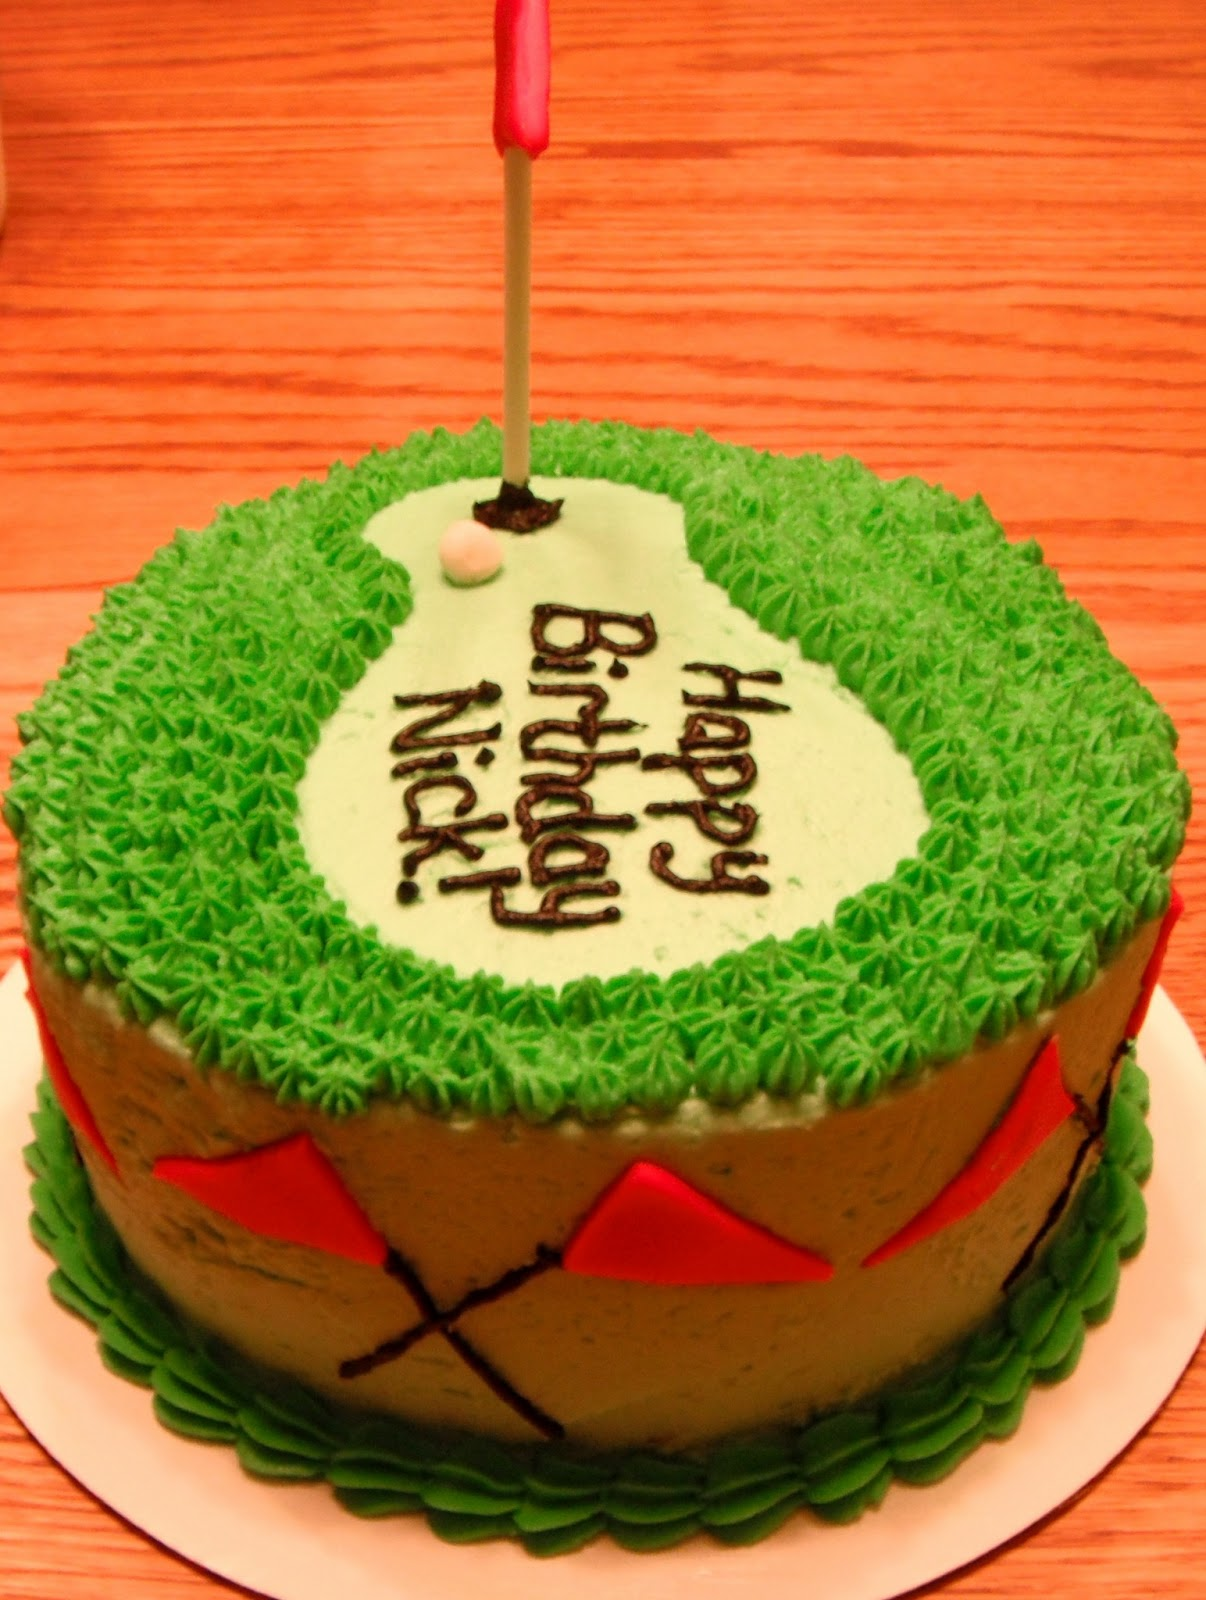 Scrapping Runner Creations Golf Cake